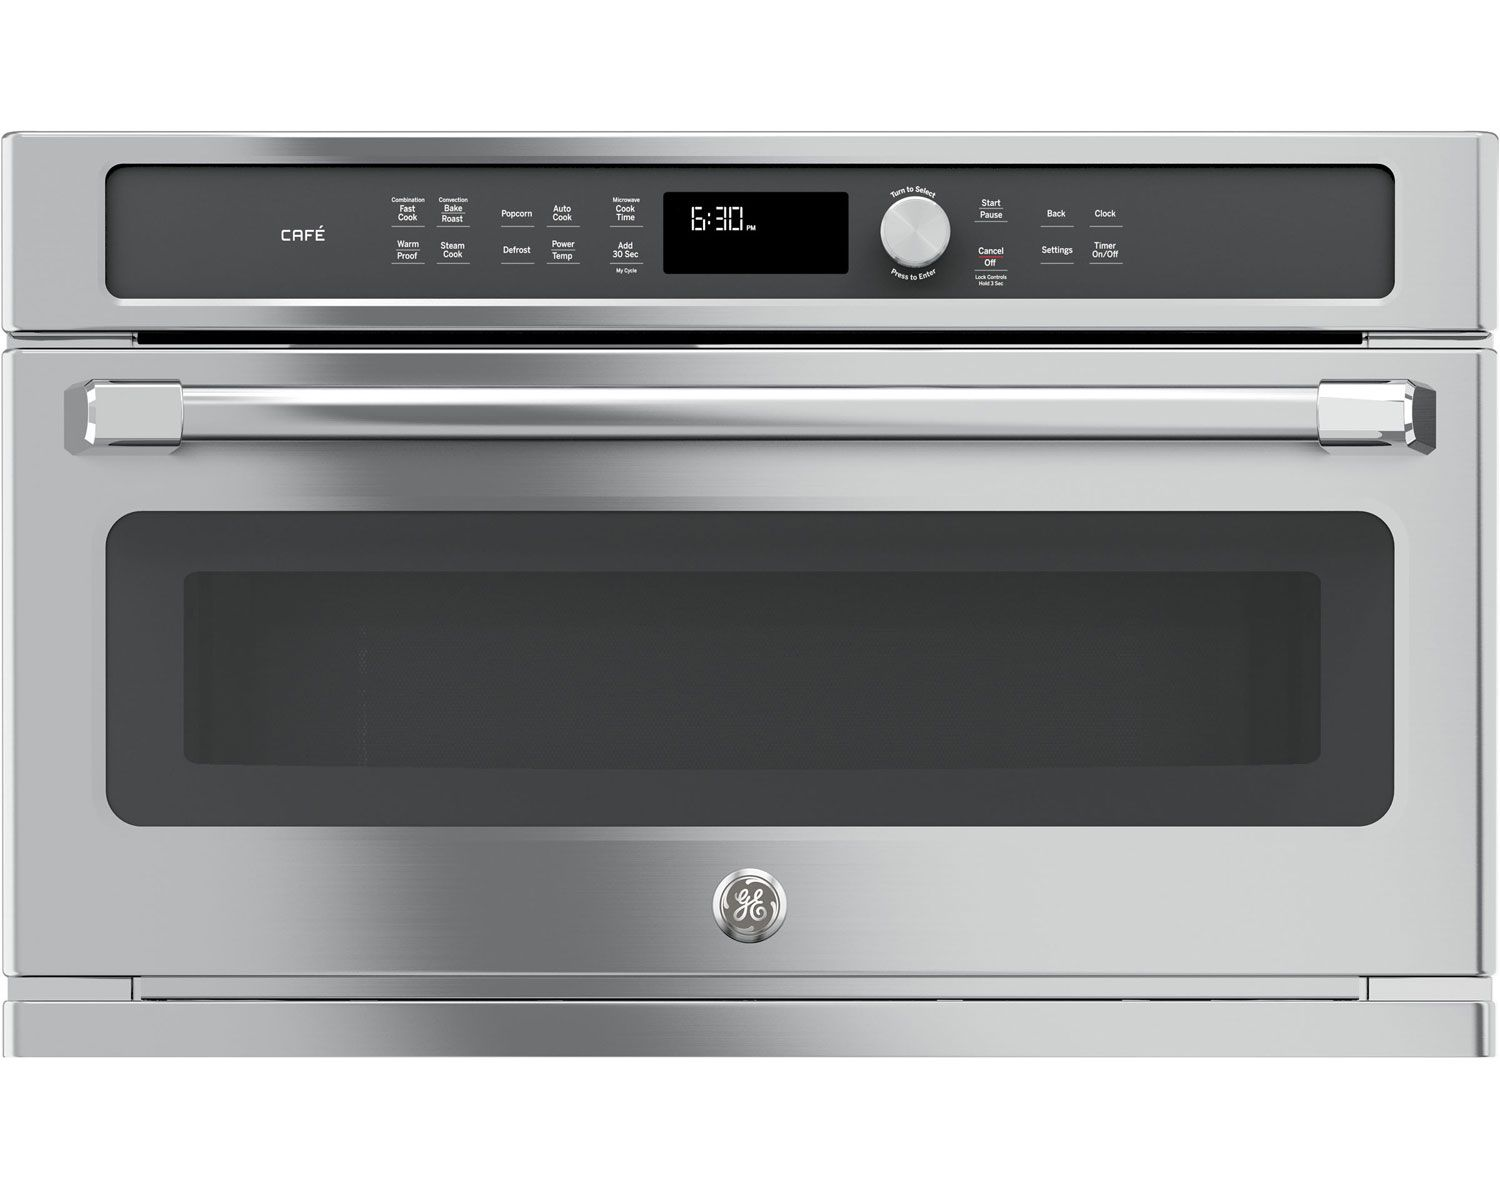 Ge Cafe Series Built In Stainless Steel Microwave Convection Oven Cwb7030slss